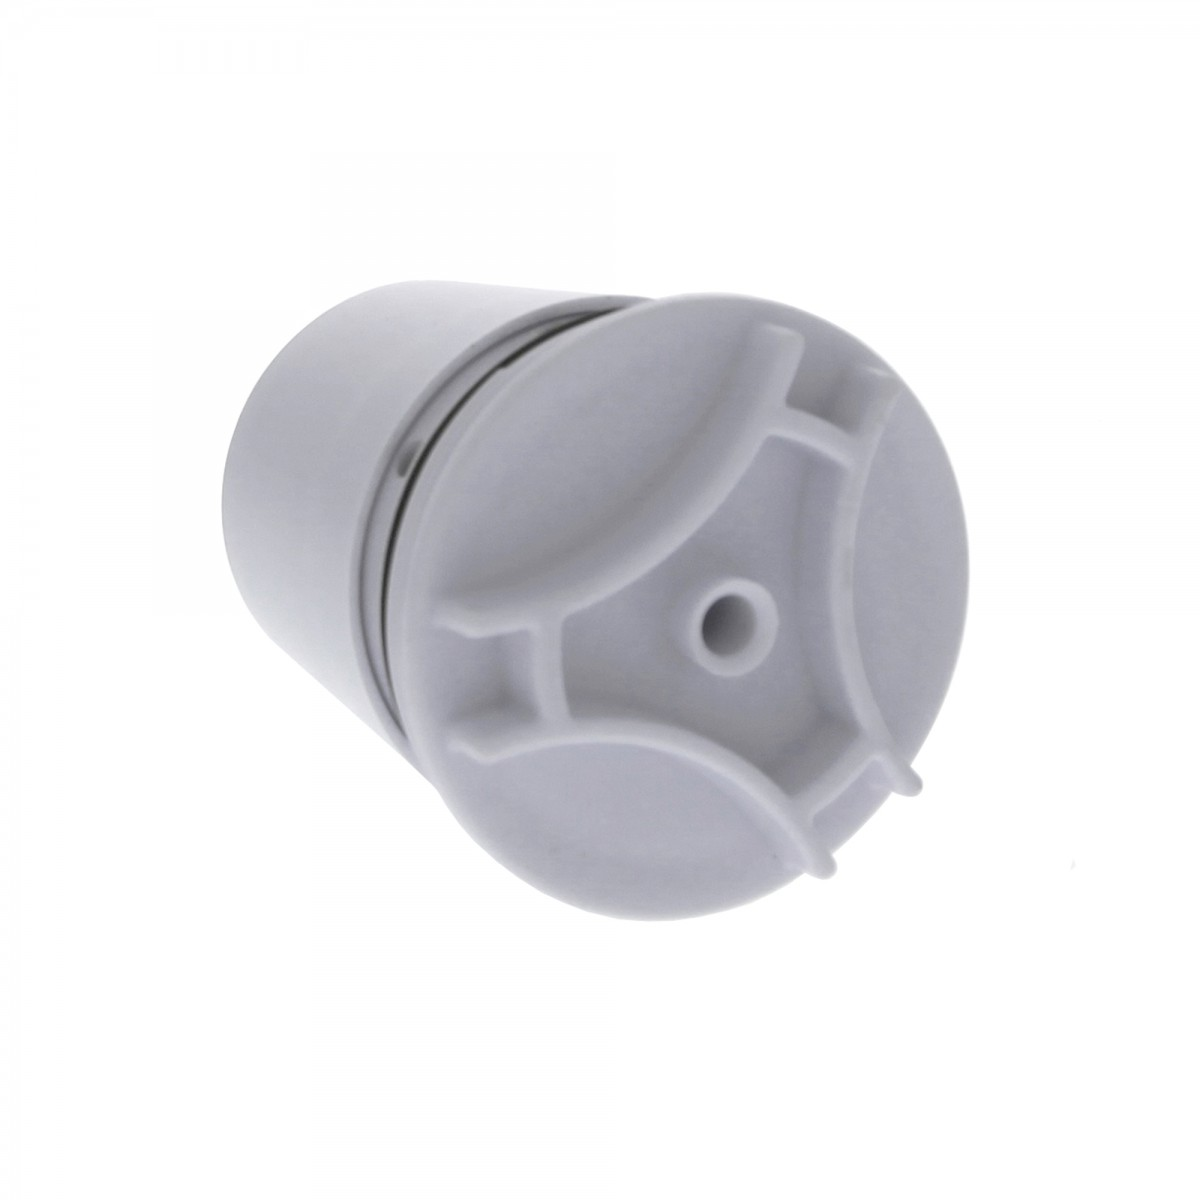 Culligan FM-15RA Comparable Faucet Filter Replacement Cartridge By Tier1